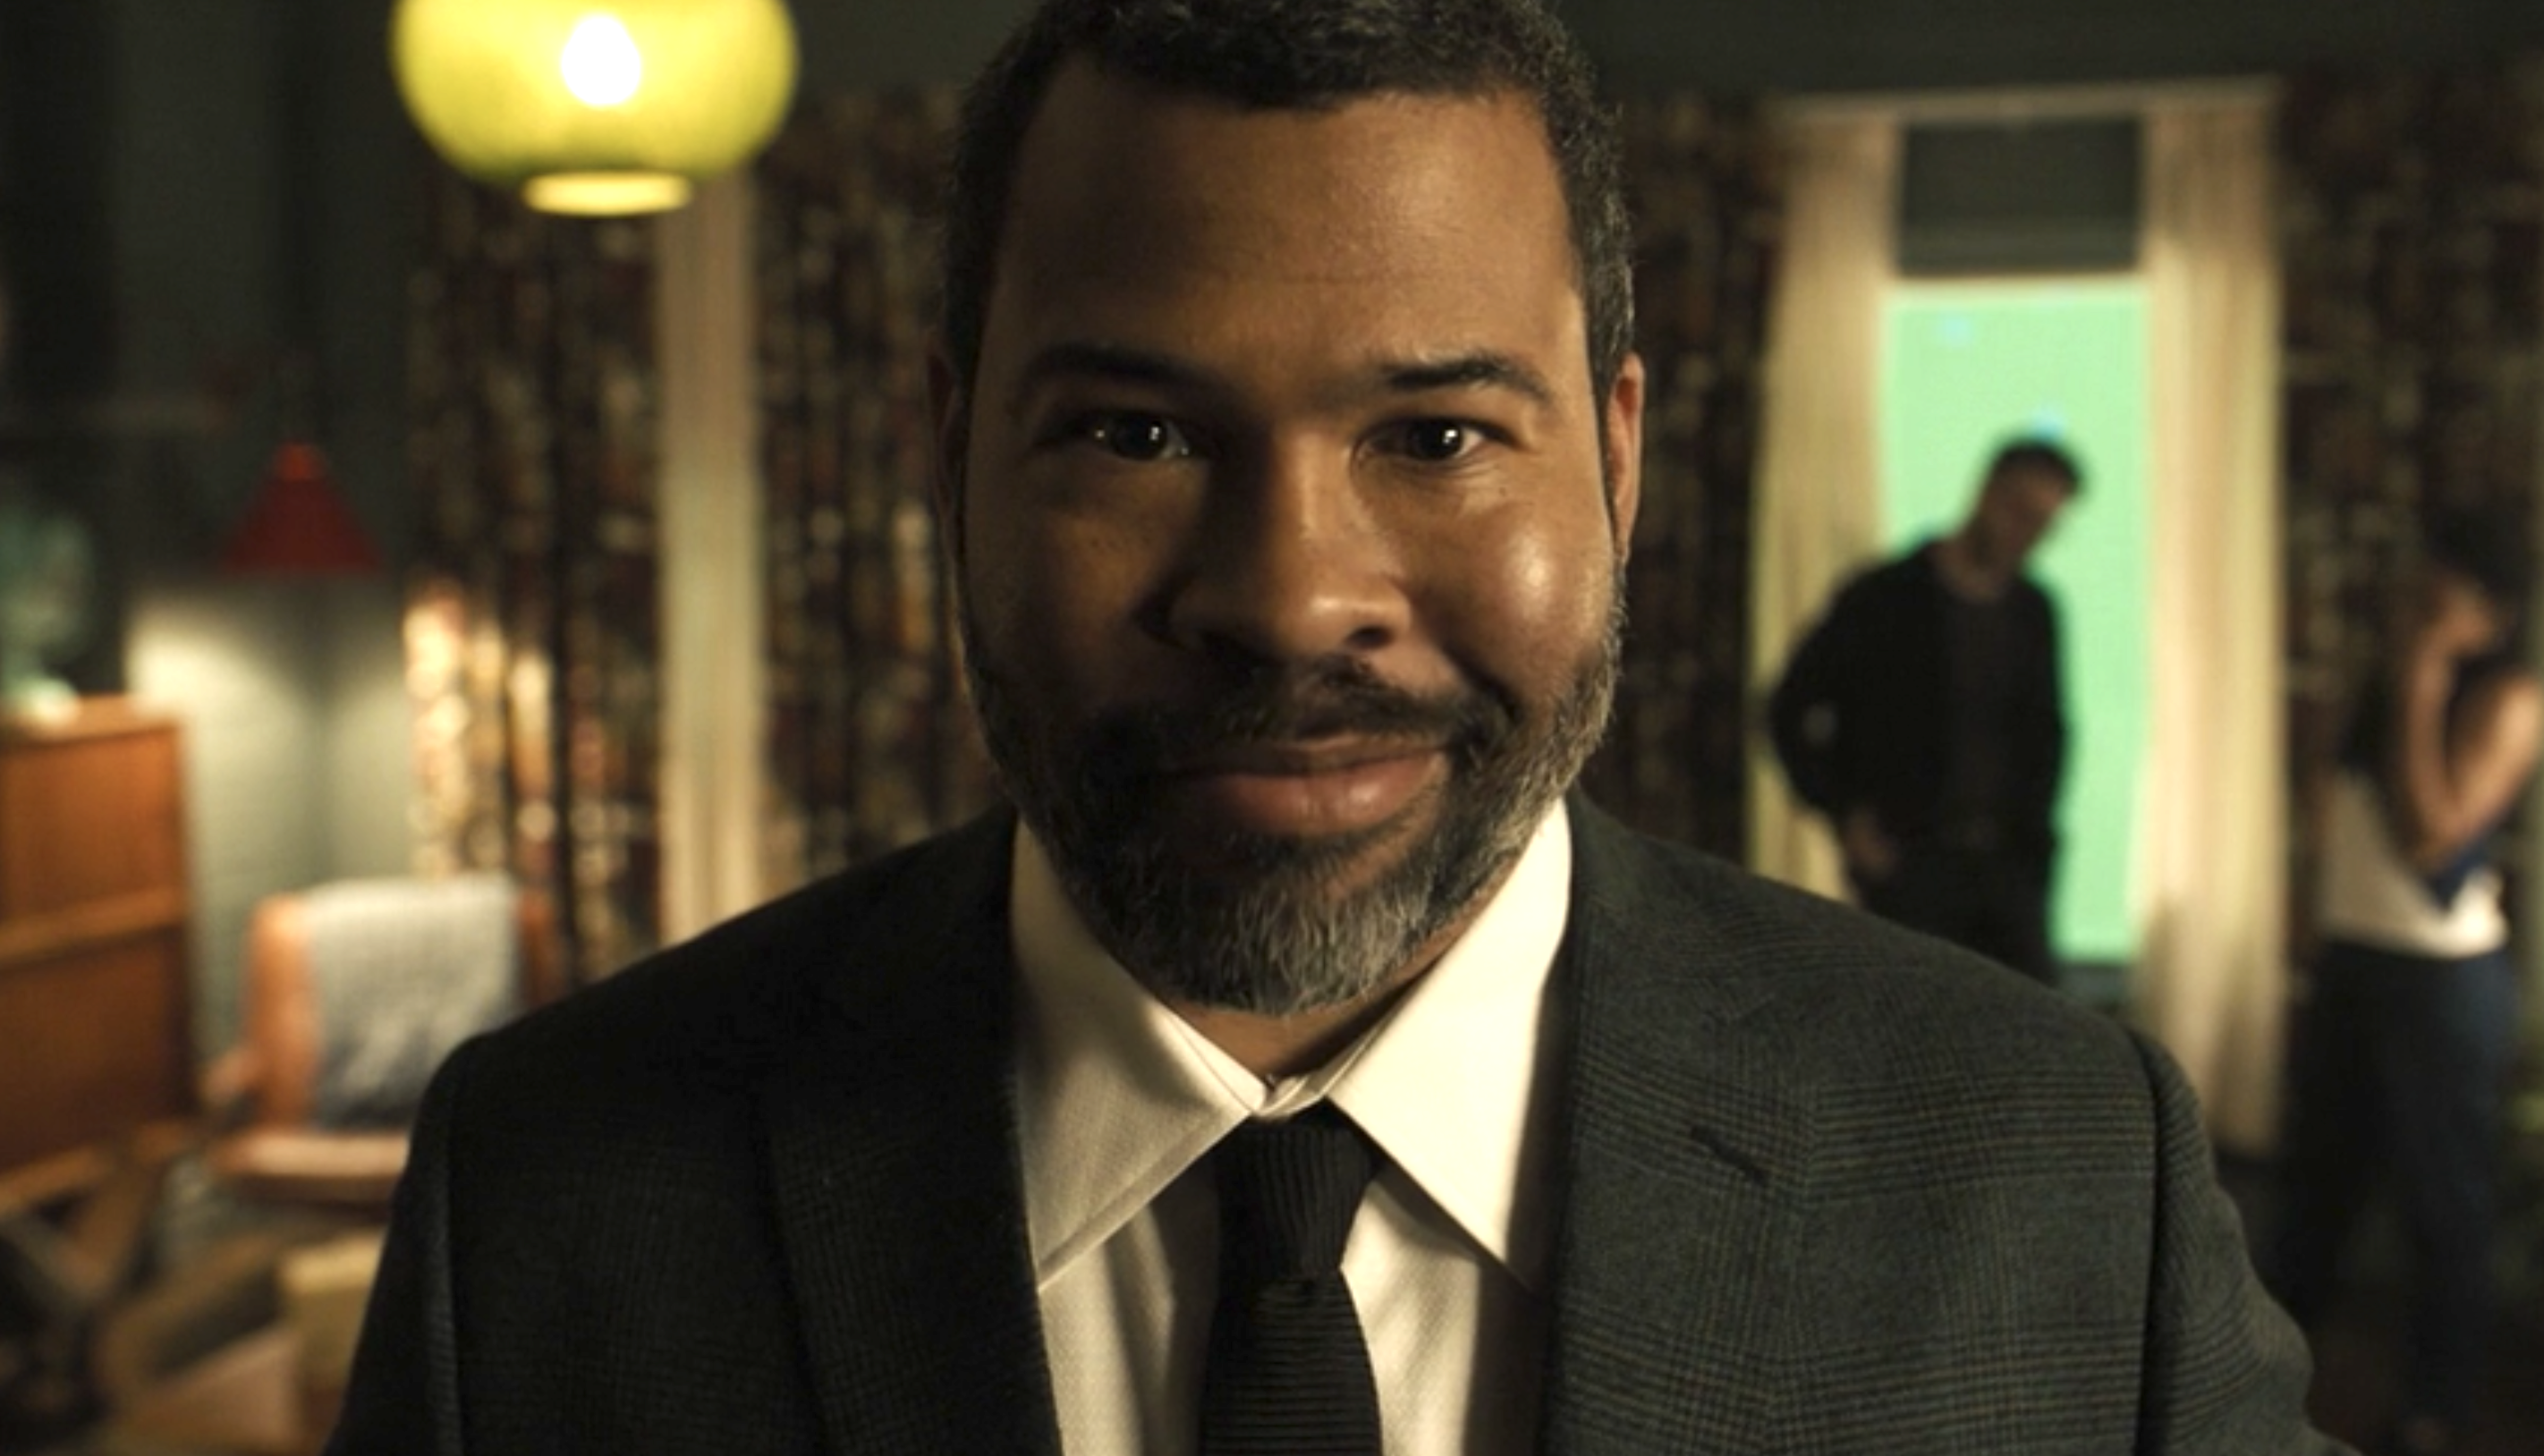 Jordan Peele The twilight zone